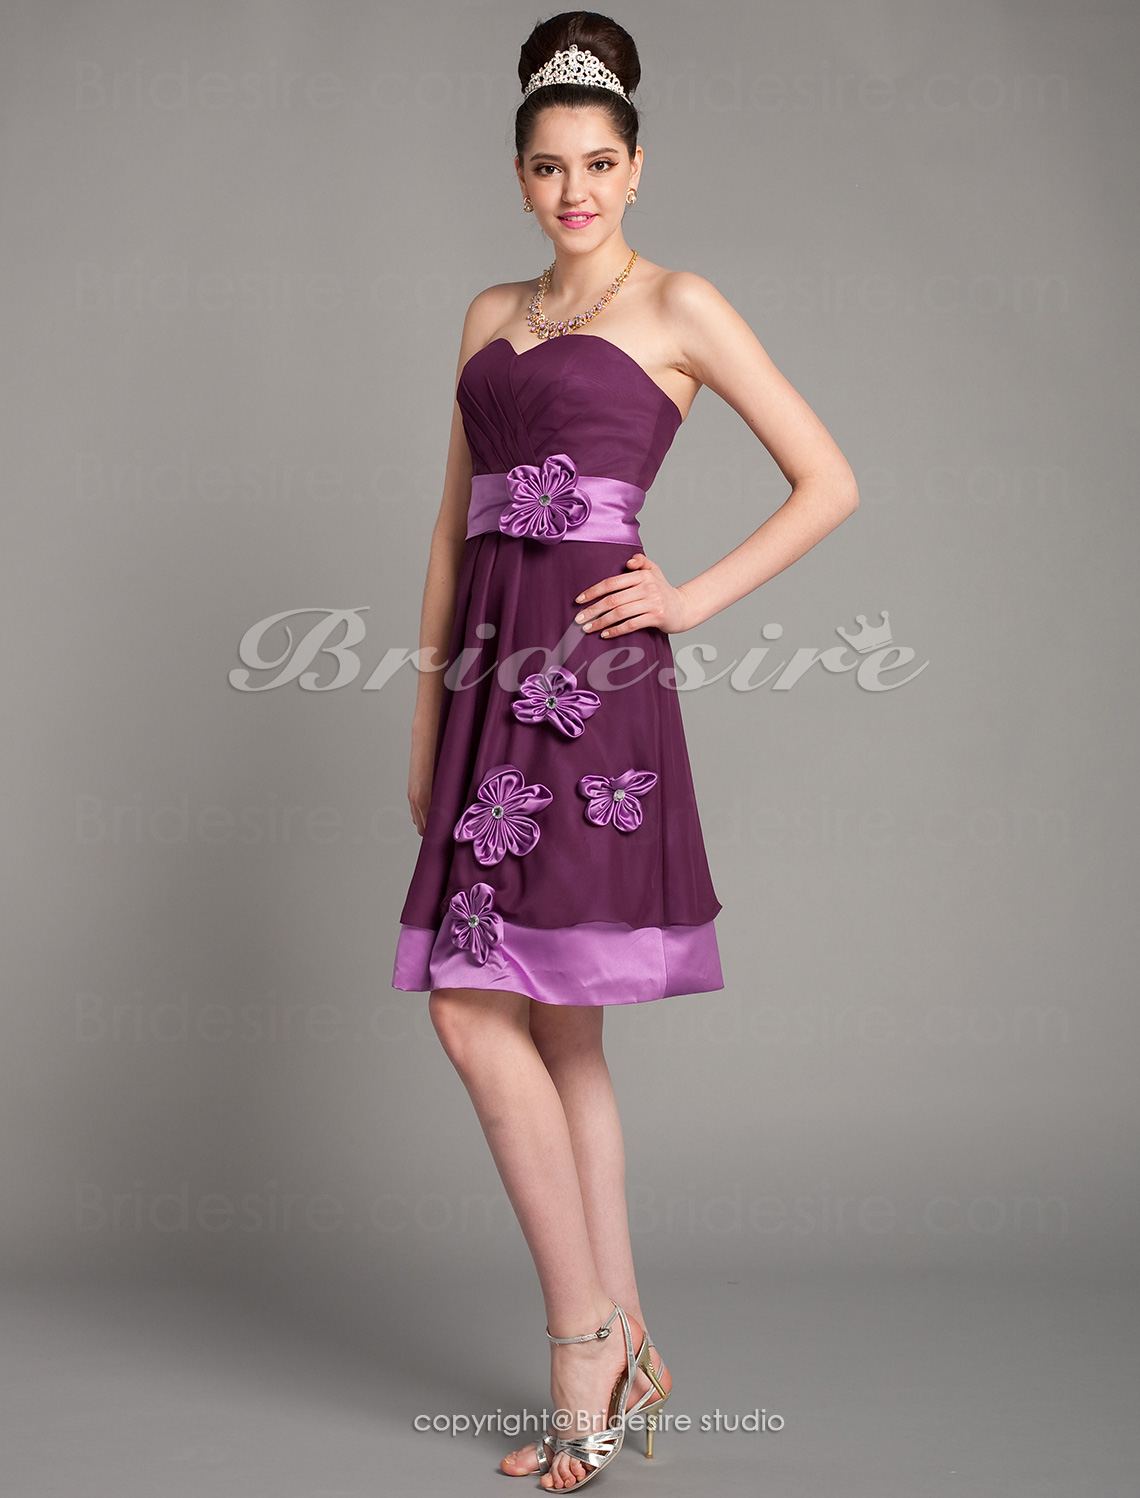 A-line Knee-length Sweetheart Satin And Chiffon Bridesmaid Dress with Removale Straps